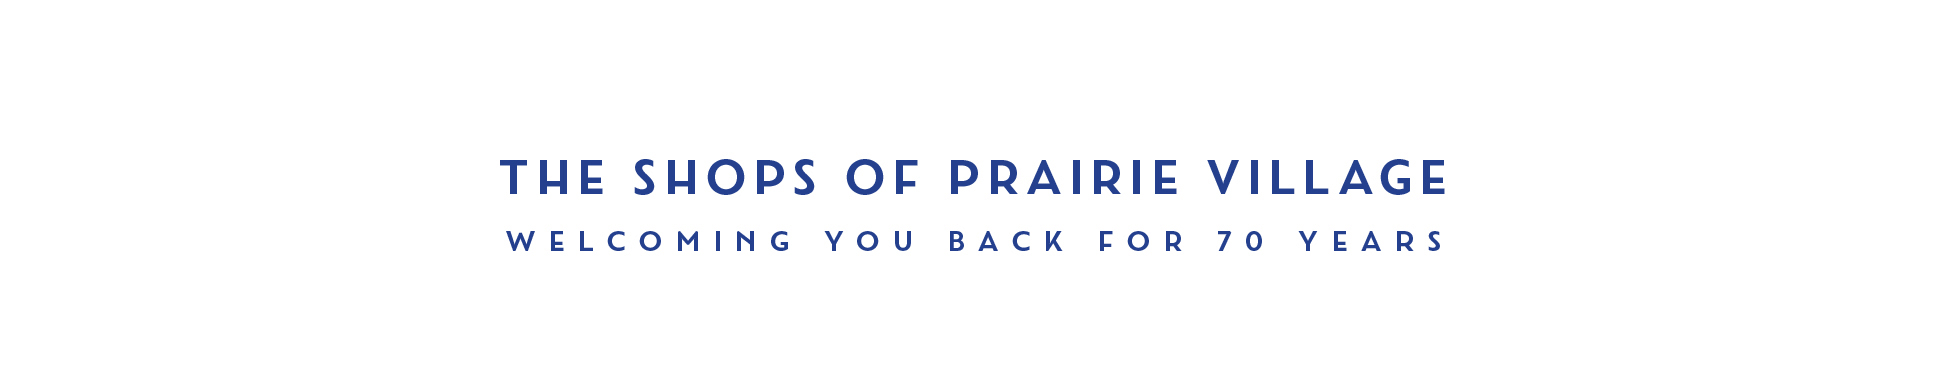 New brand campaign for the shops at Prairie Village